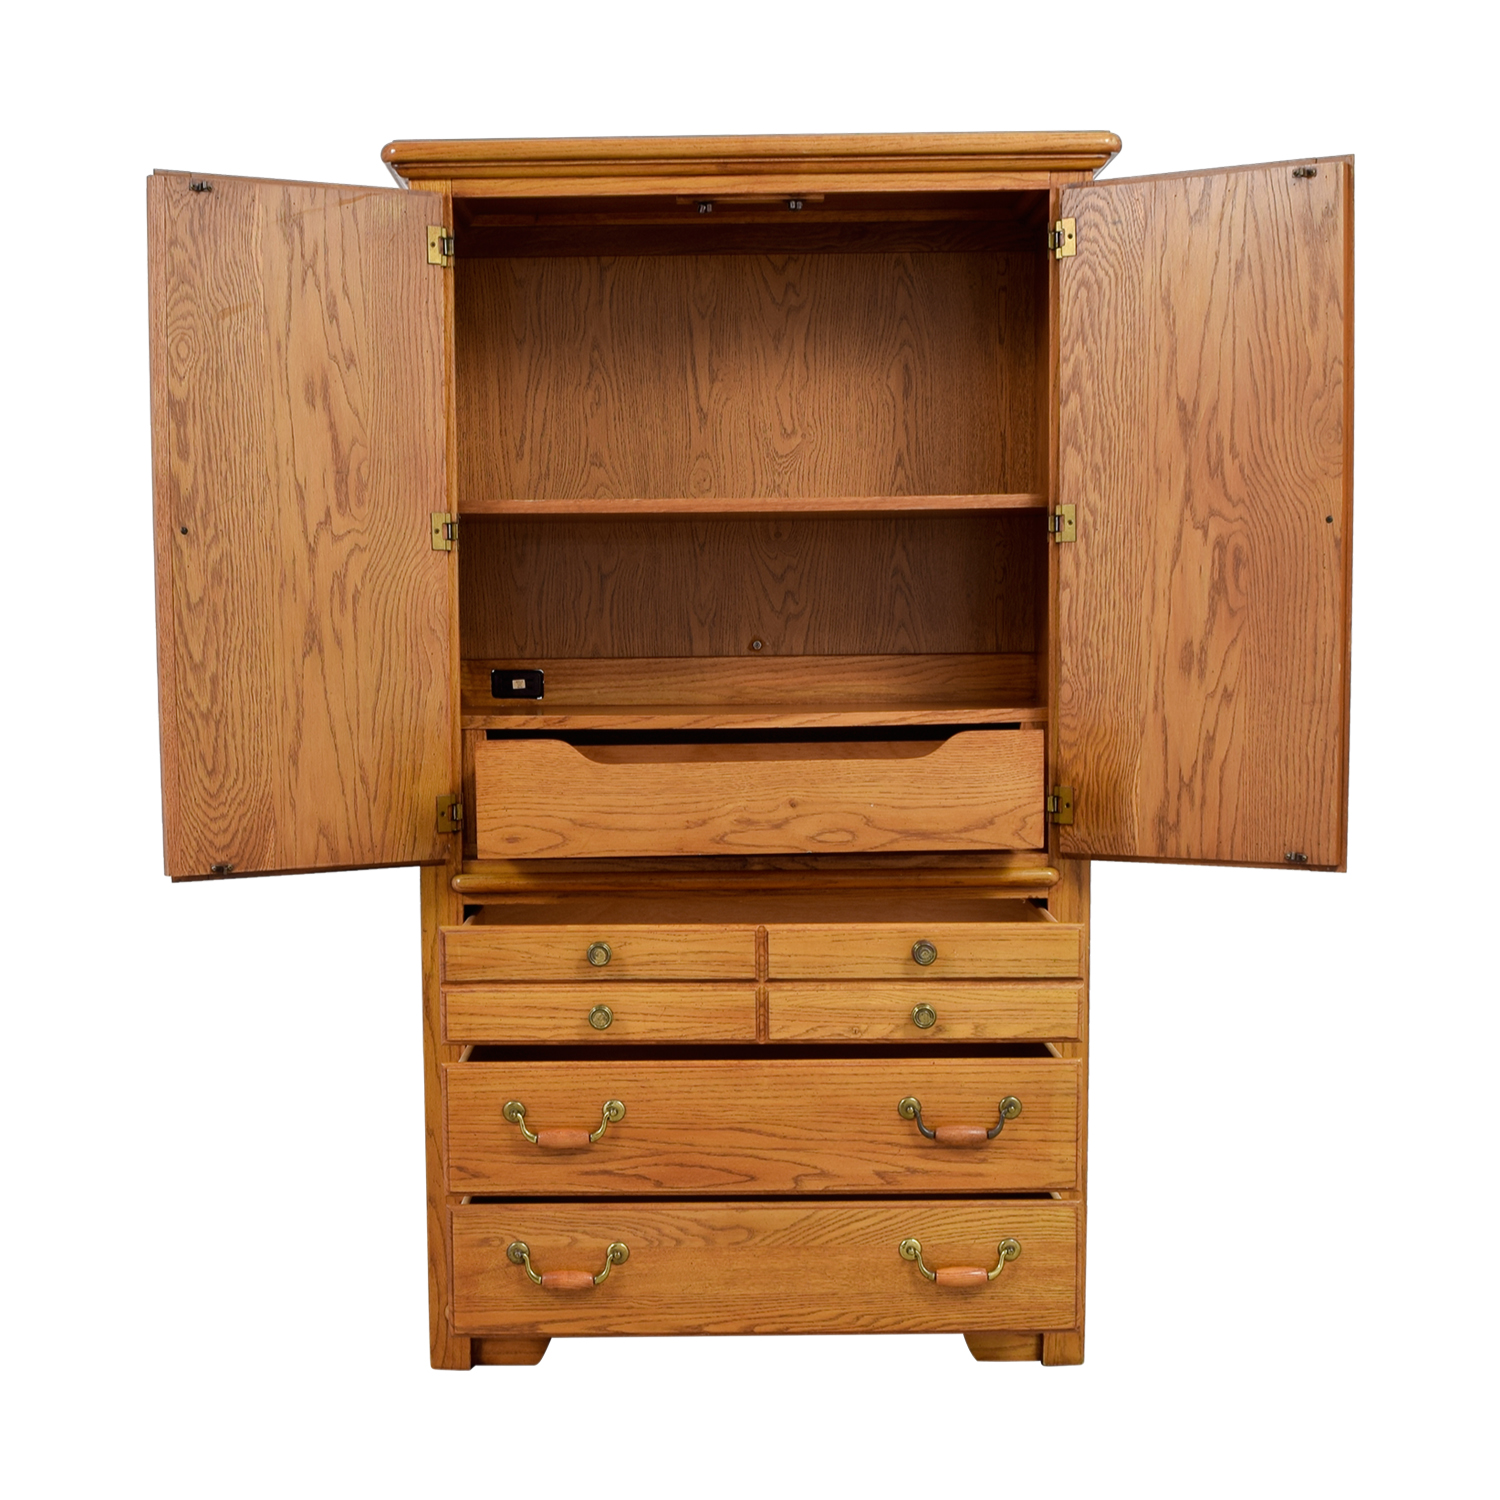 Thomasville Thomasville Pine Wood Armoire coupon